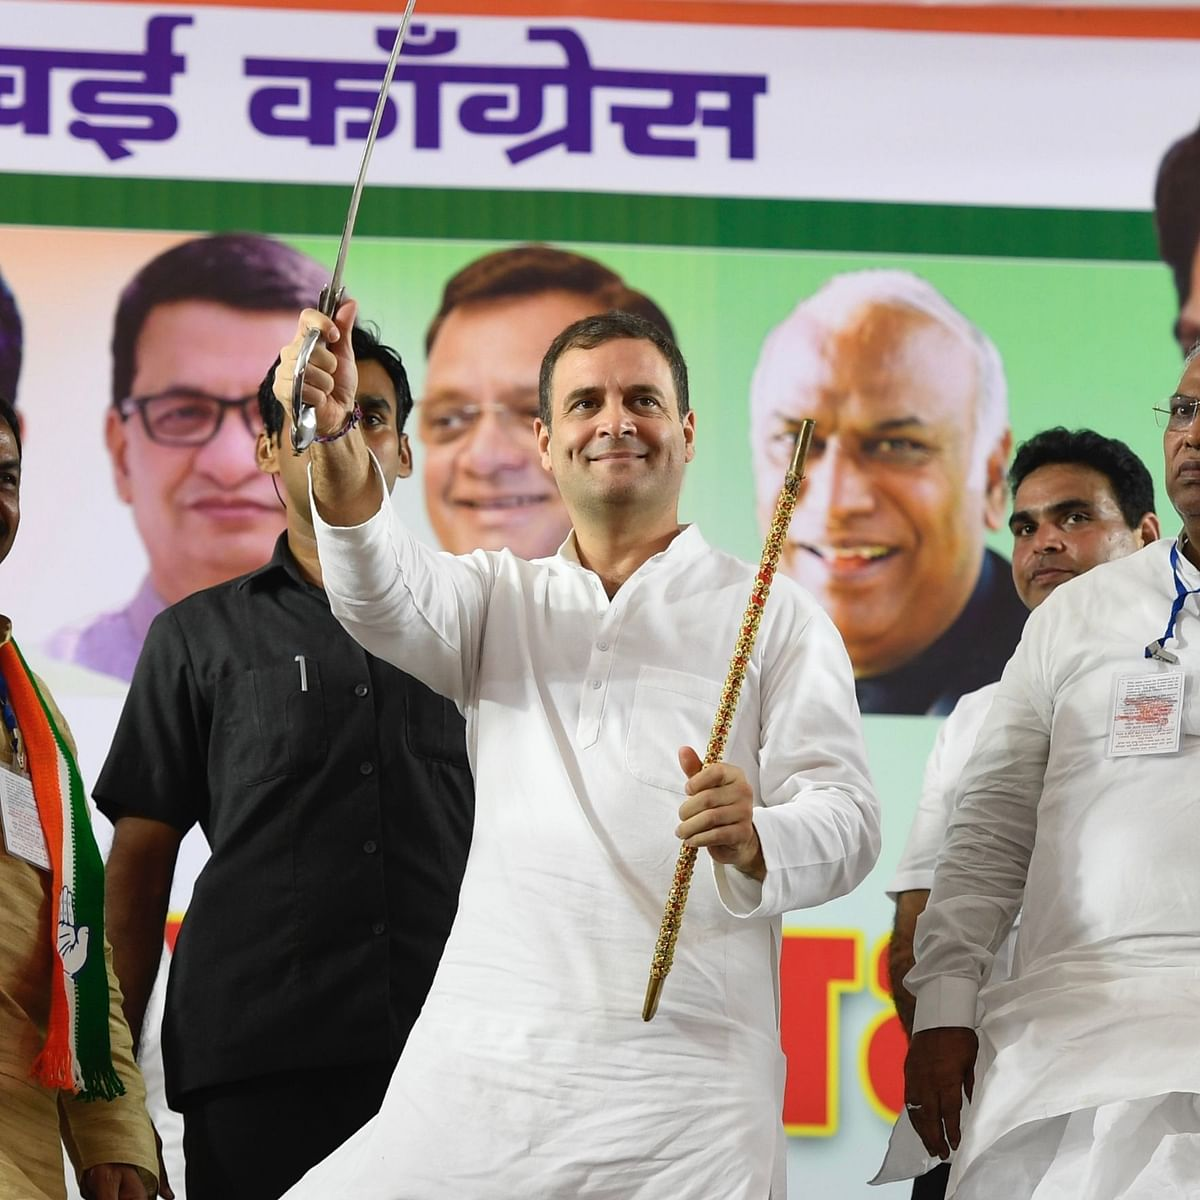 Congress leader Rahul Gandhi at an election rally in Chandivali, Mumbai, on October 13, 2019 (Photo courtesy: AICC)